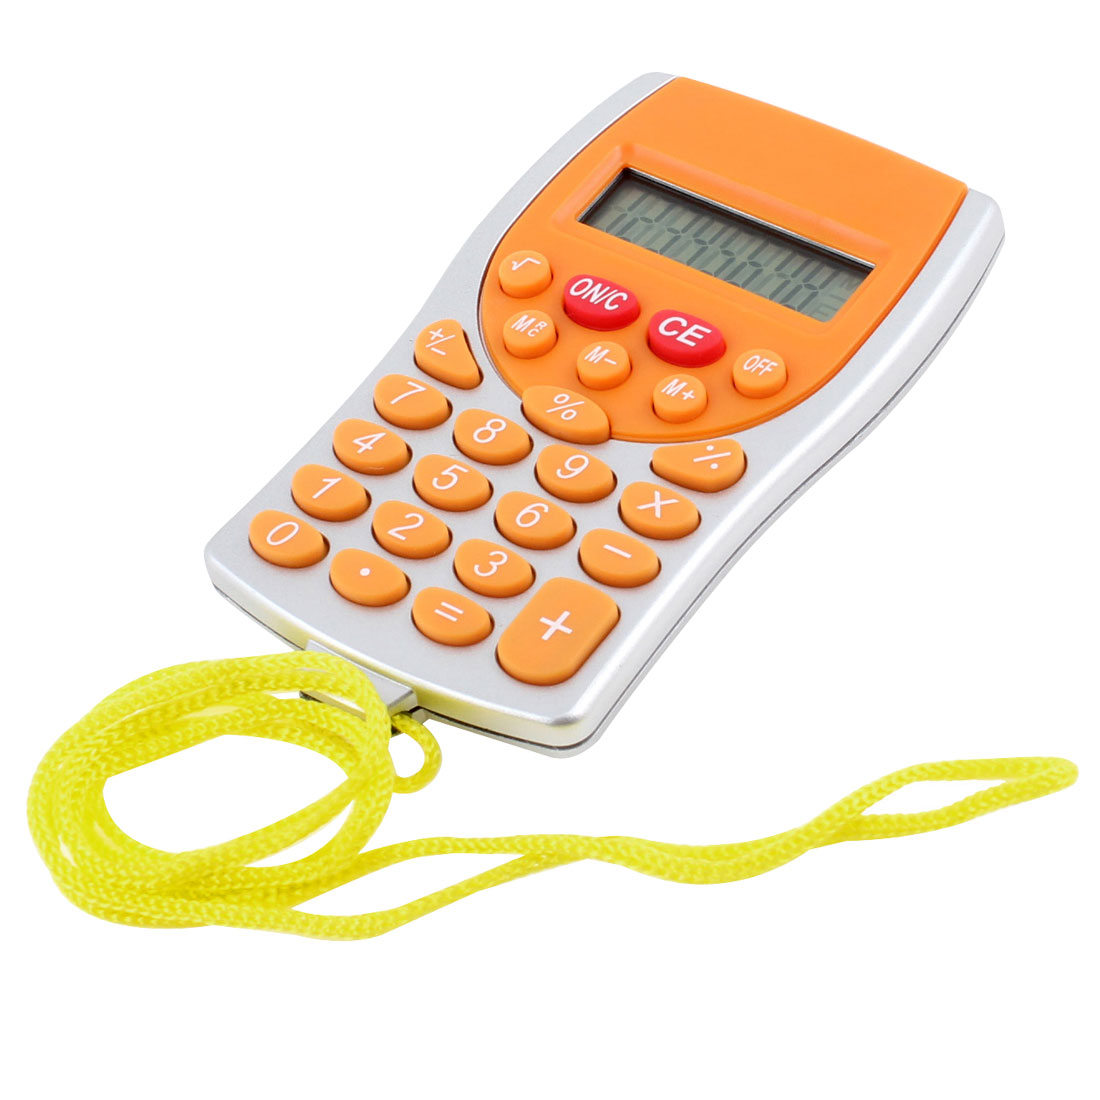 Portable Silver Tone Orange Plastic Mini Calculator w Strap